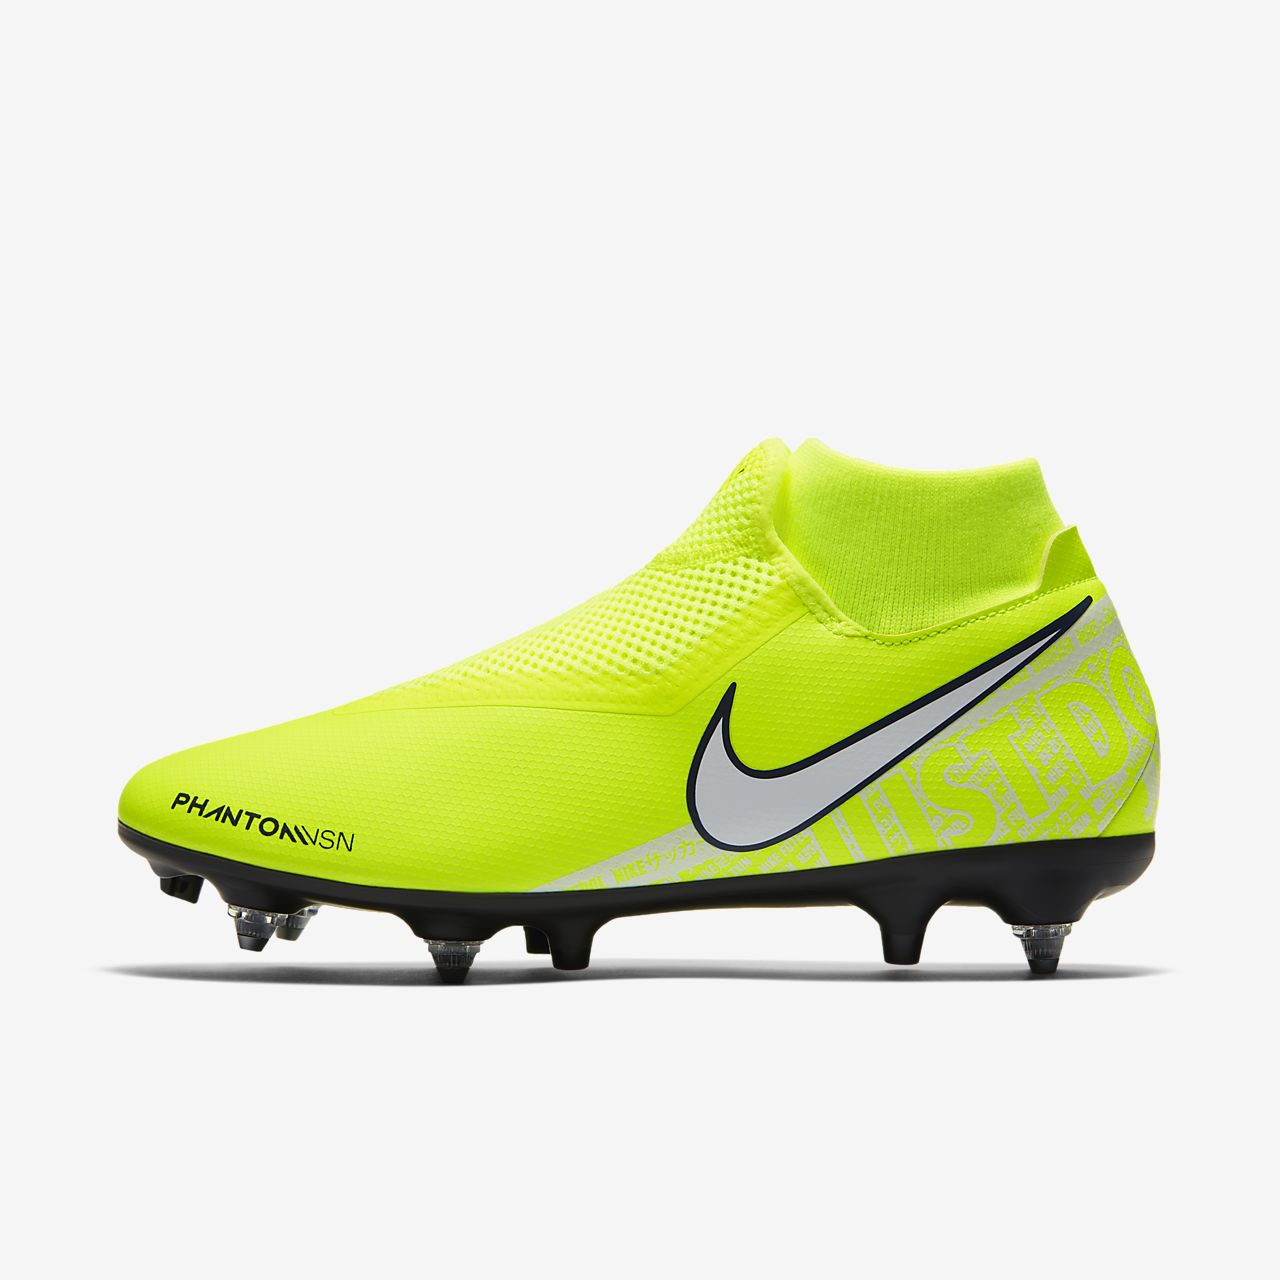 Scarpa da calcio per terreni morbidi Nike PhantomVSN Academy Dynamic Fit SG-Pro Anti-Clog Traction